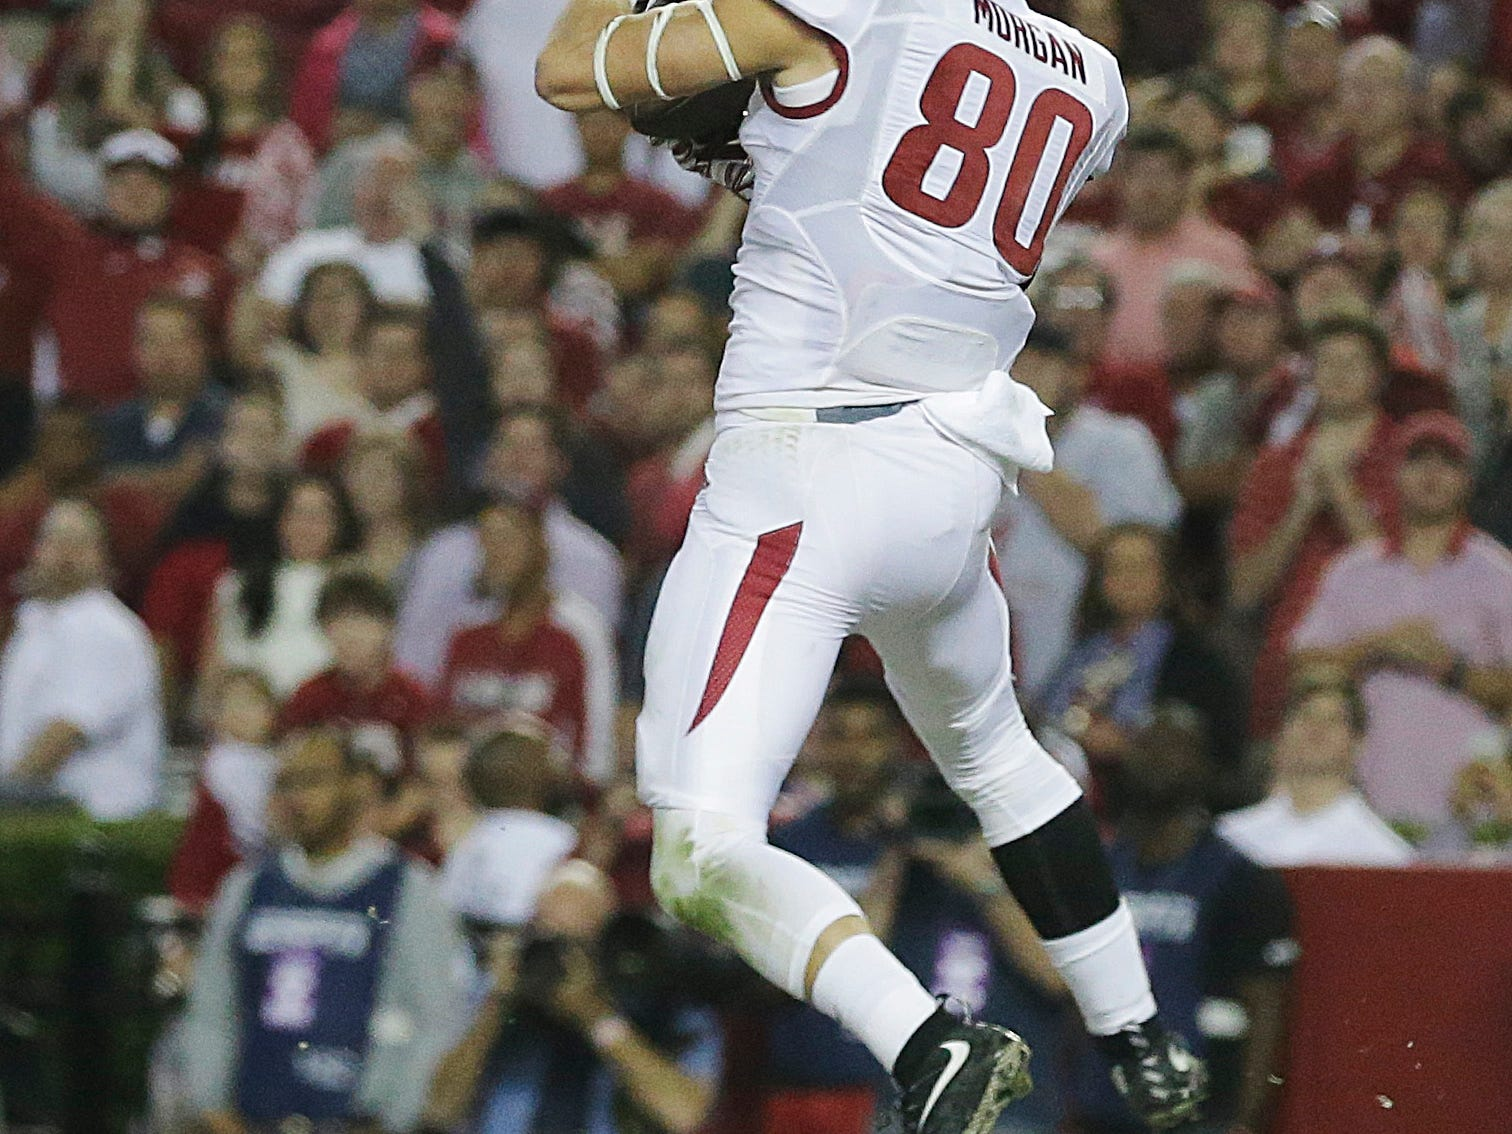 Arkansas wide receiver Drew Morgan (80) catches the ball in the end zone and scores against Alabama in the first half of an NCAA college football game, Saturday, Oct. 10, 2015, in Tuscaloosa, Ala. (AP Photo/Brynn Anderson)